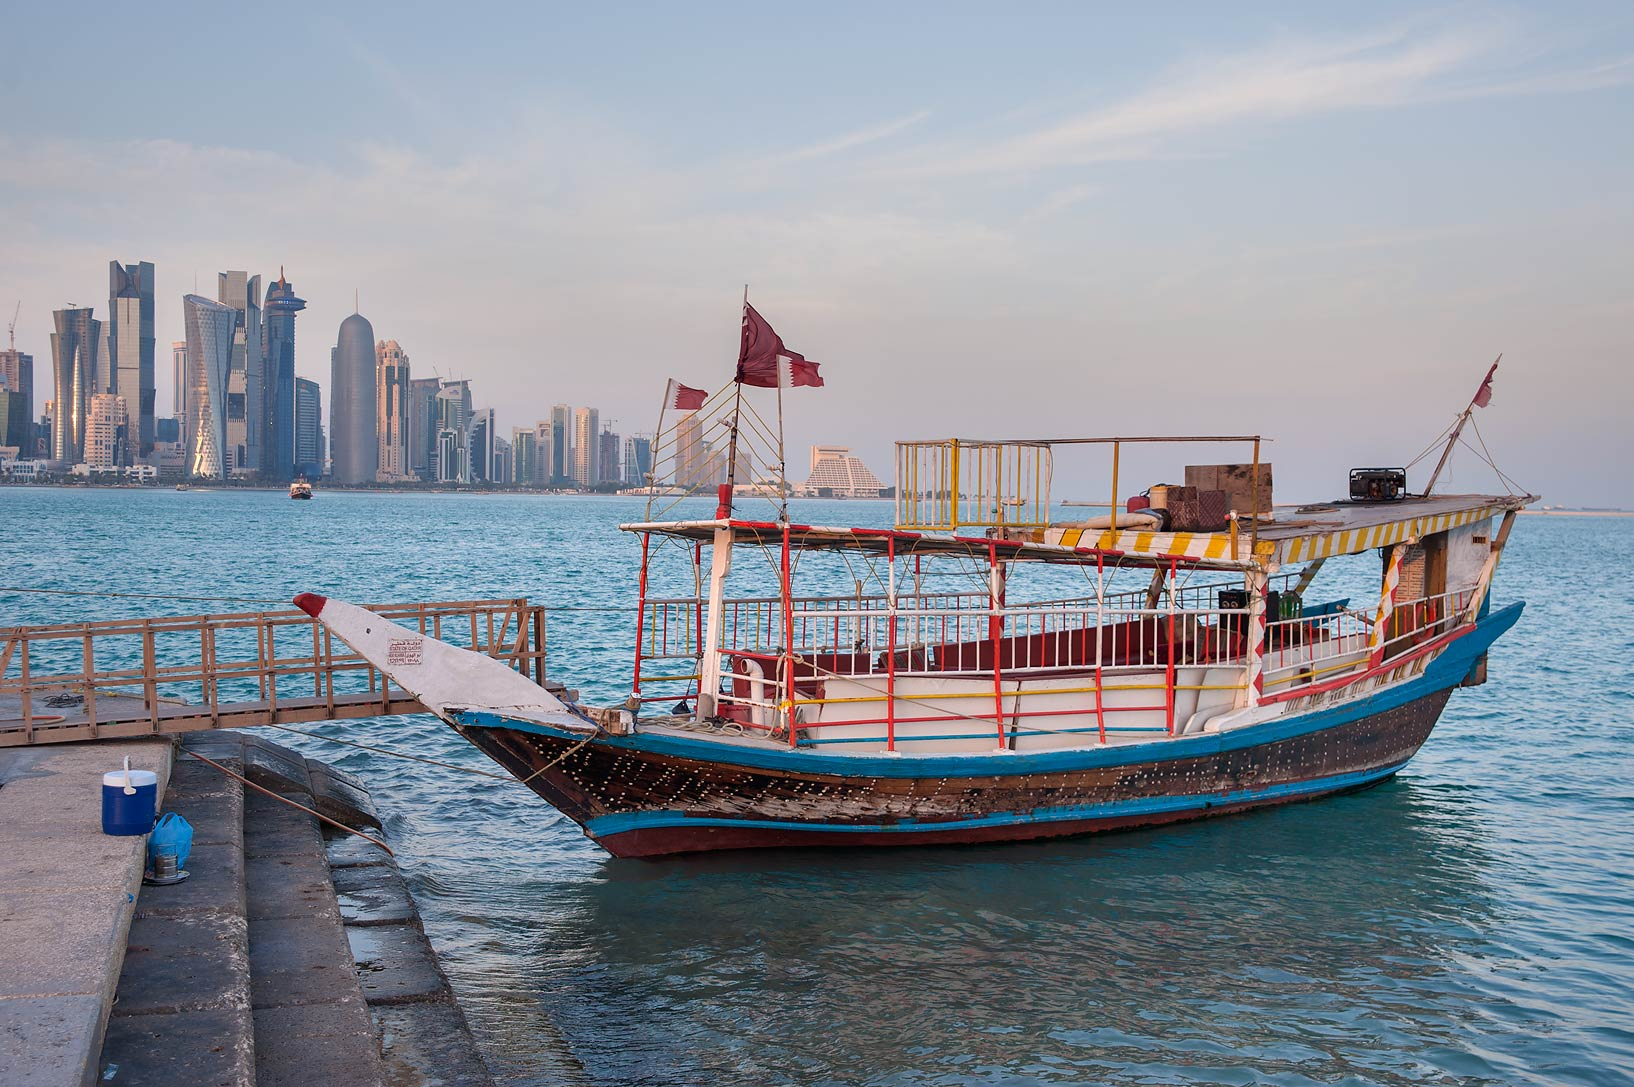 Dhow boat near Corniche, with West Bay in background. Doha, Qatar